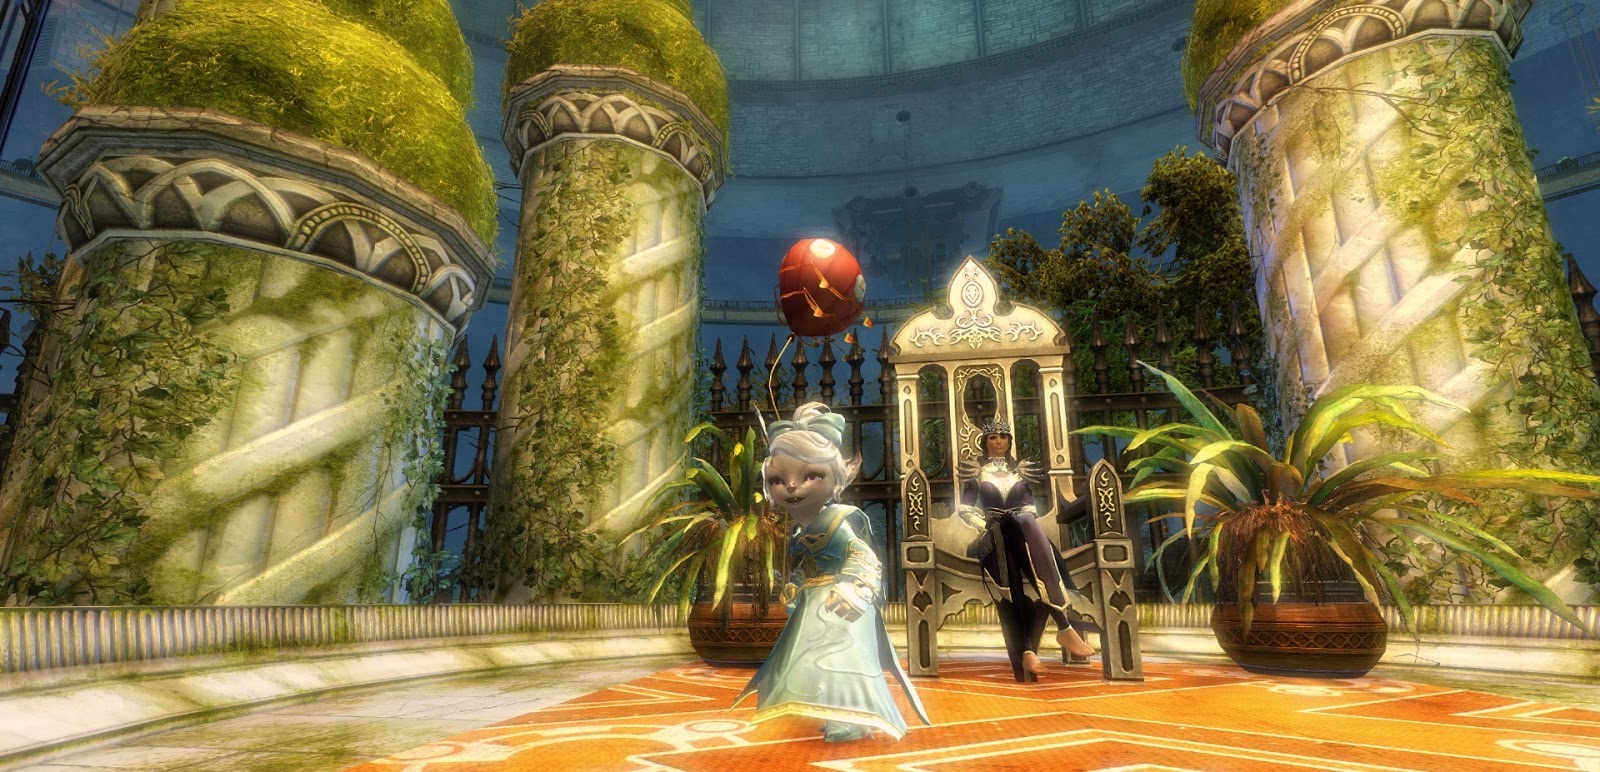 Inventory Full: Now We Are Six : GW2